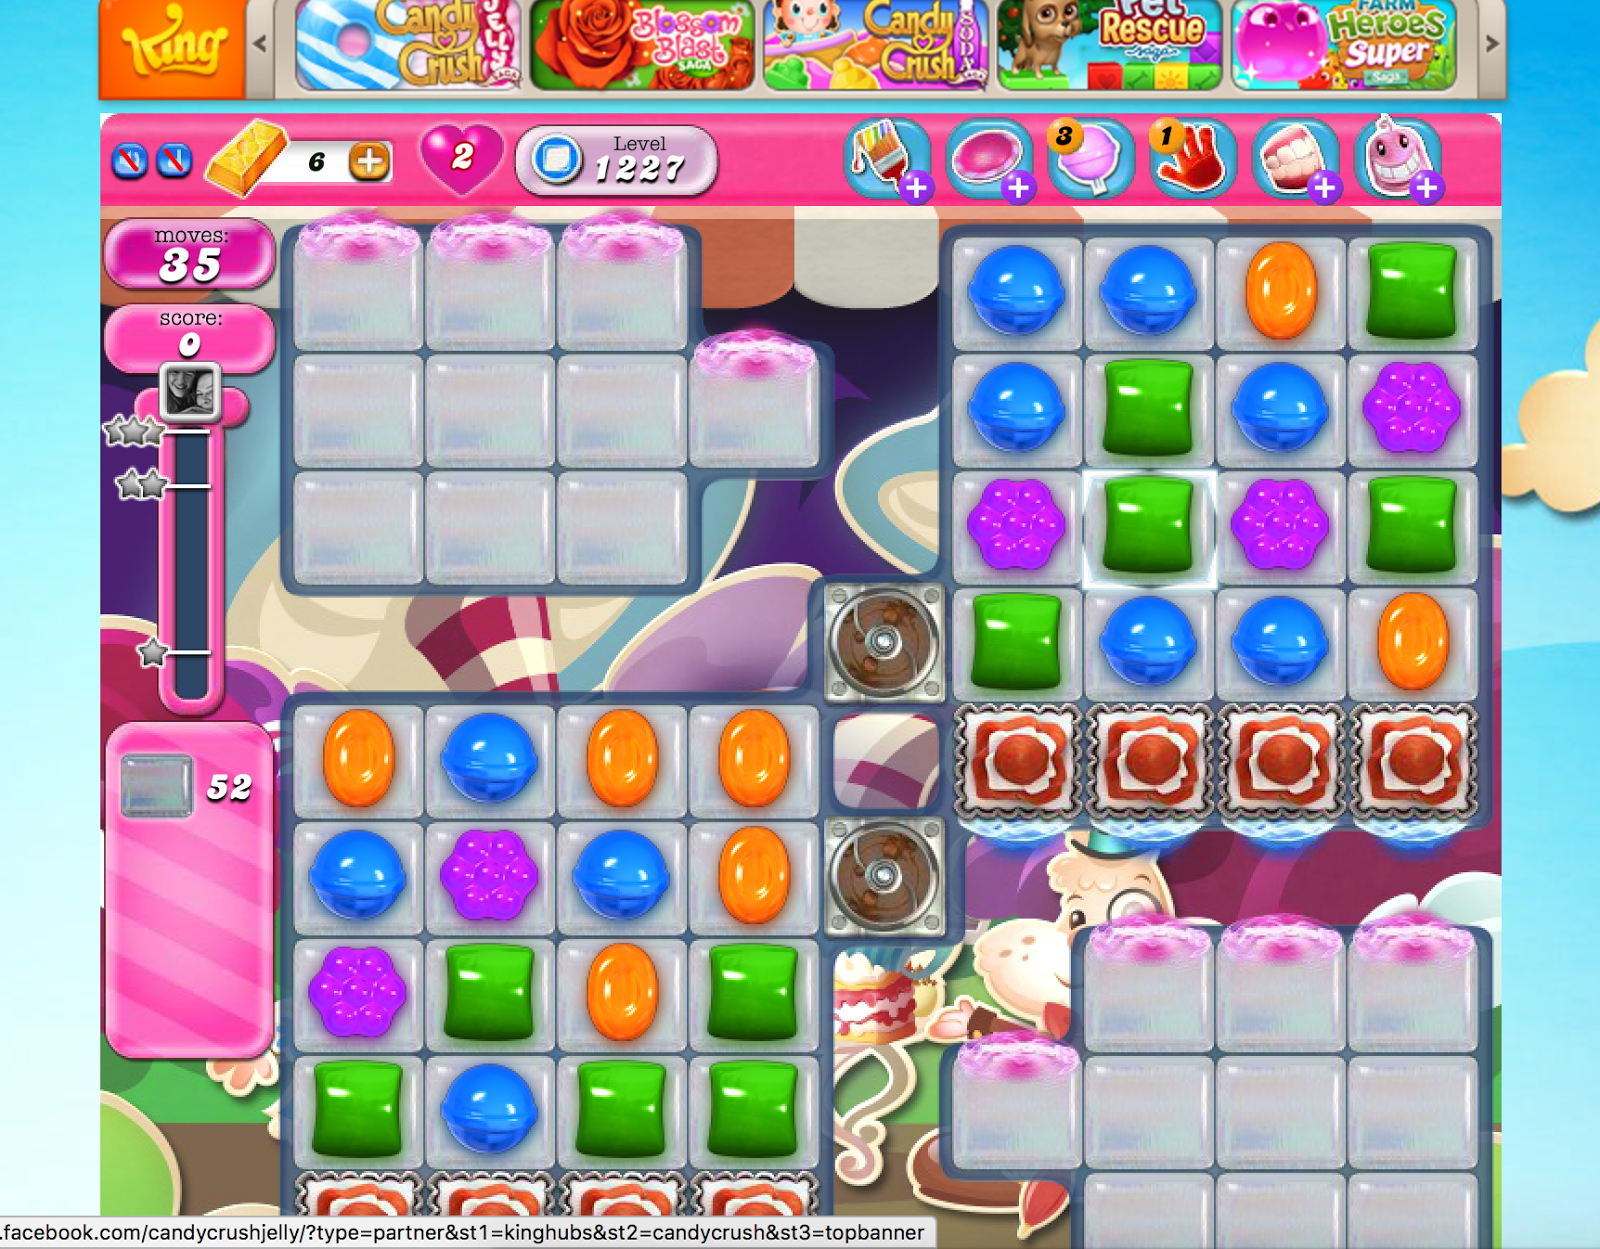 Screenshot of Candy Crush Saga game in action - life lessons from Candy Crush